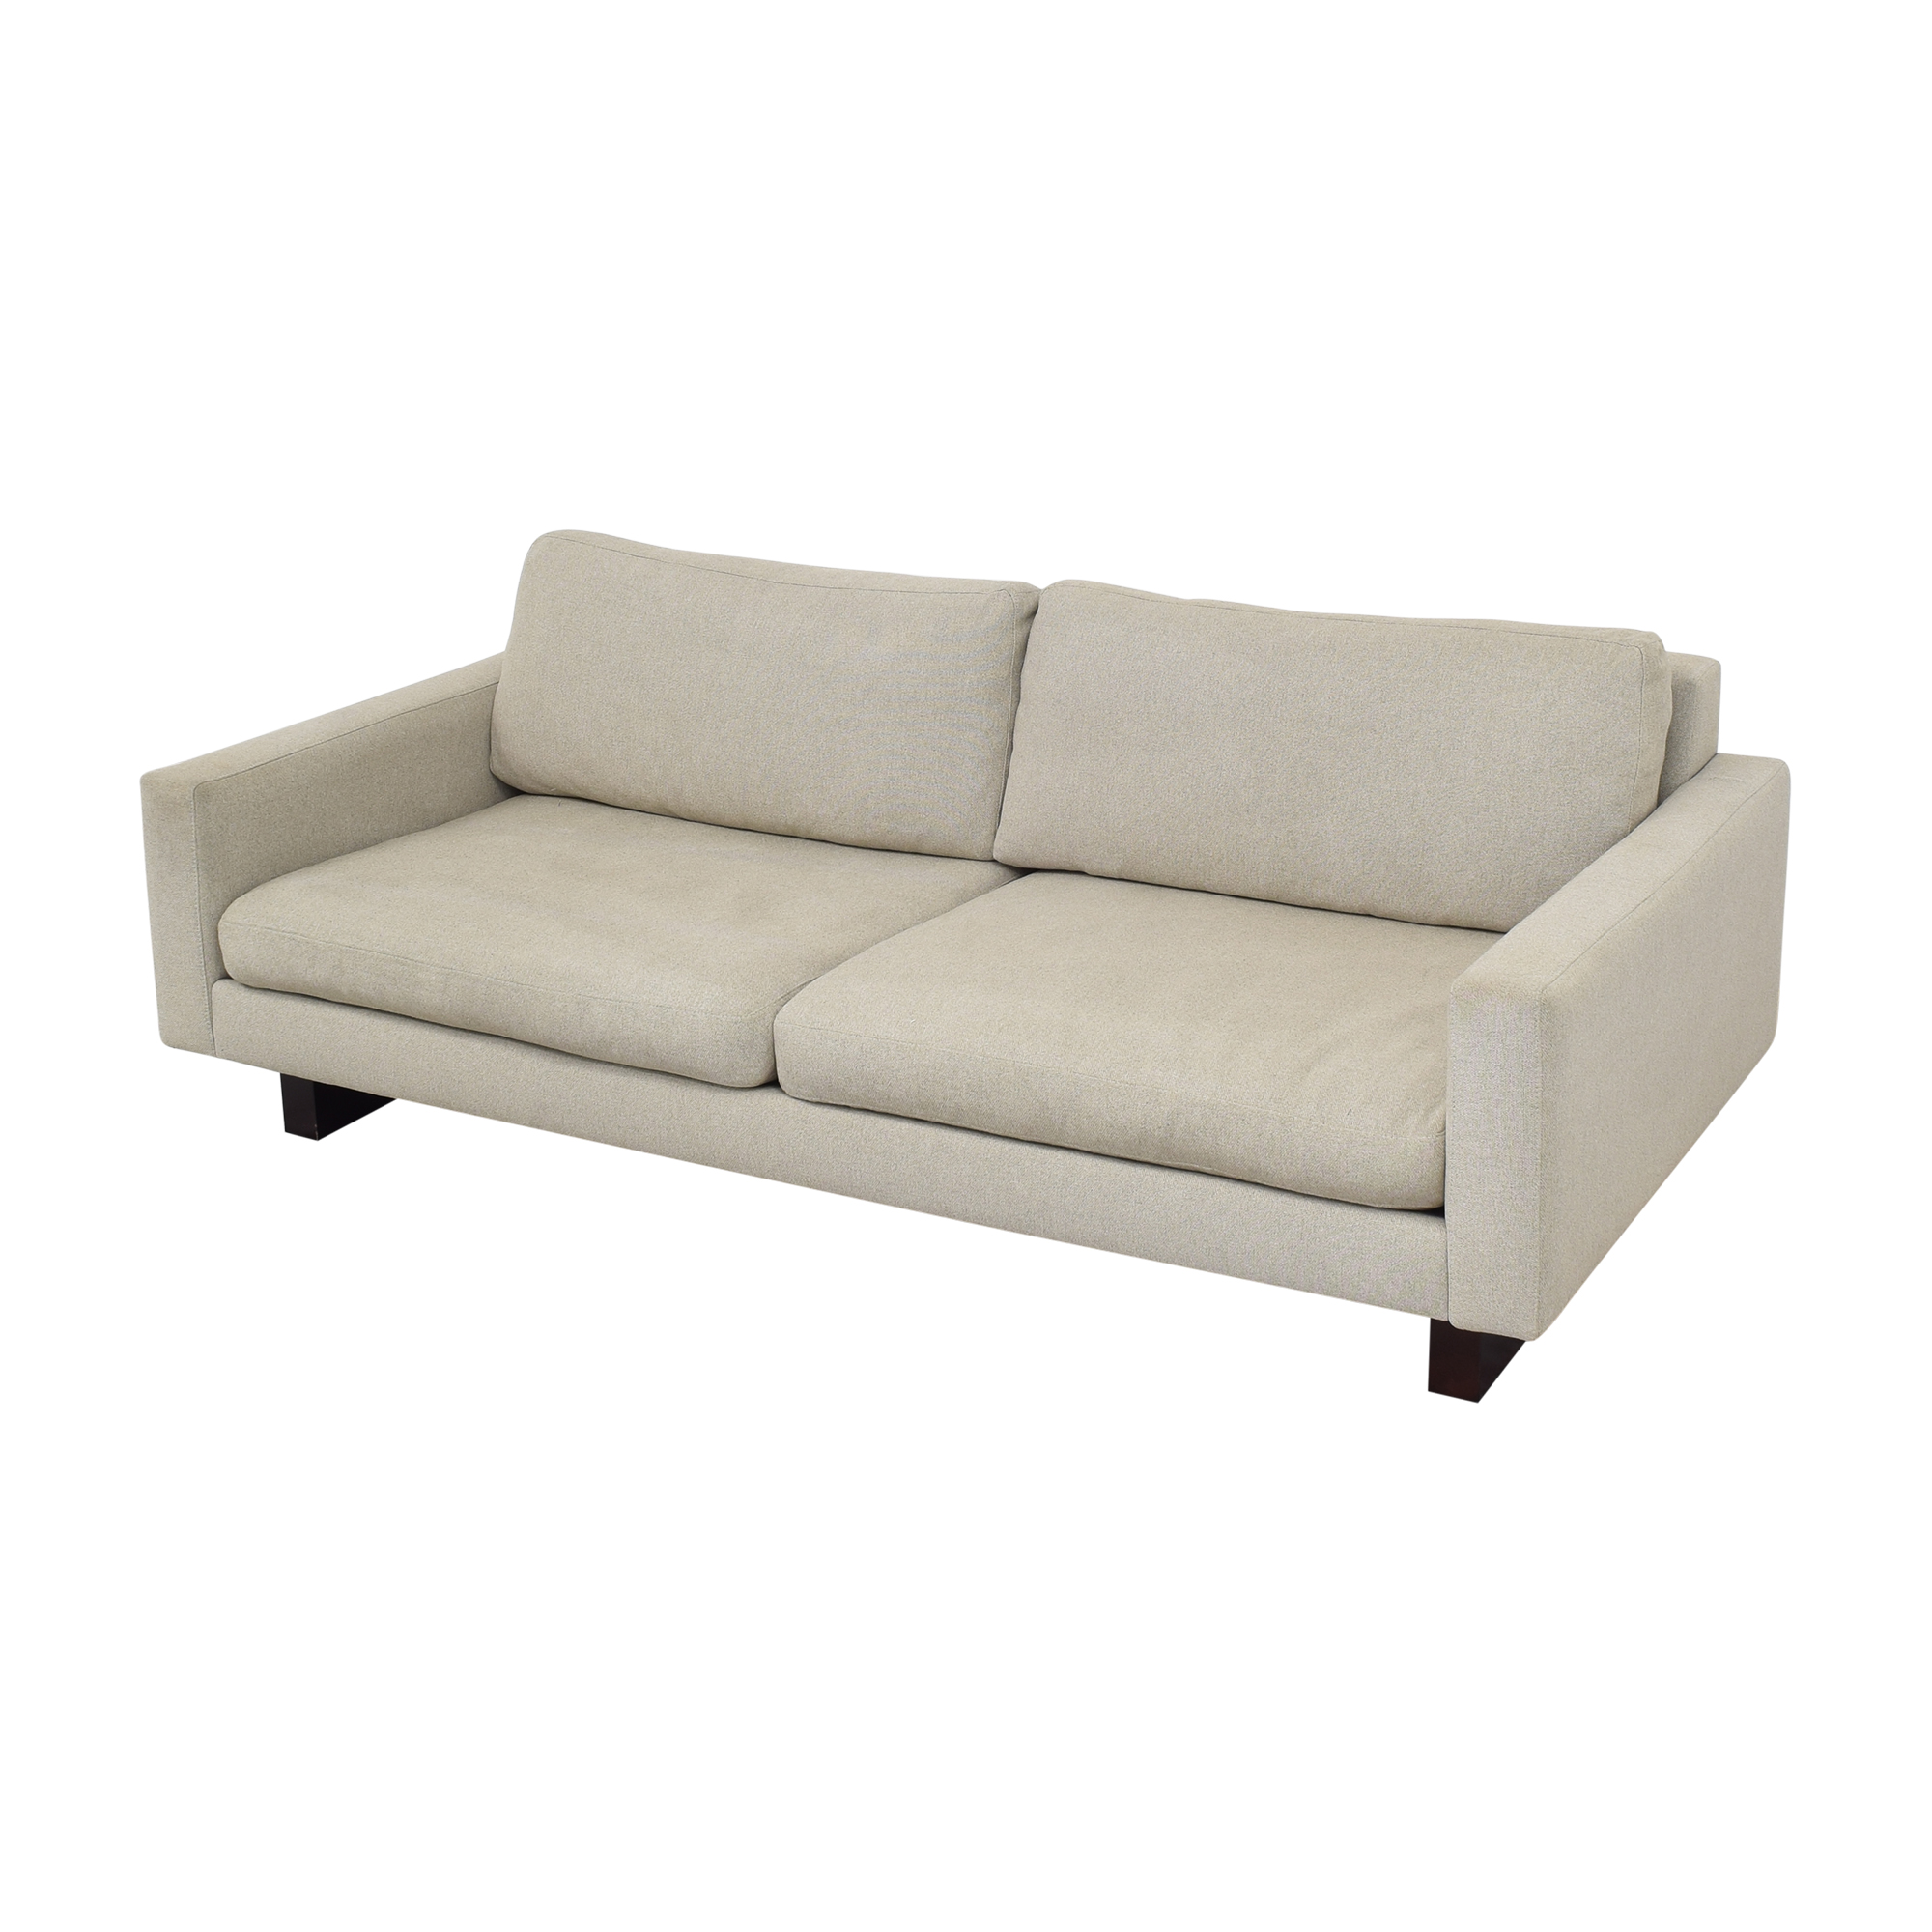 buy Room & Board Room & Board Hess Sofa online